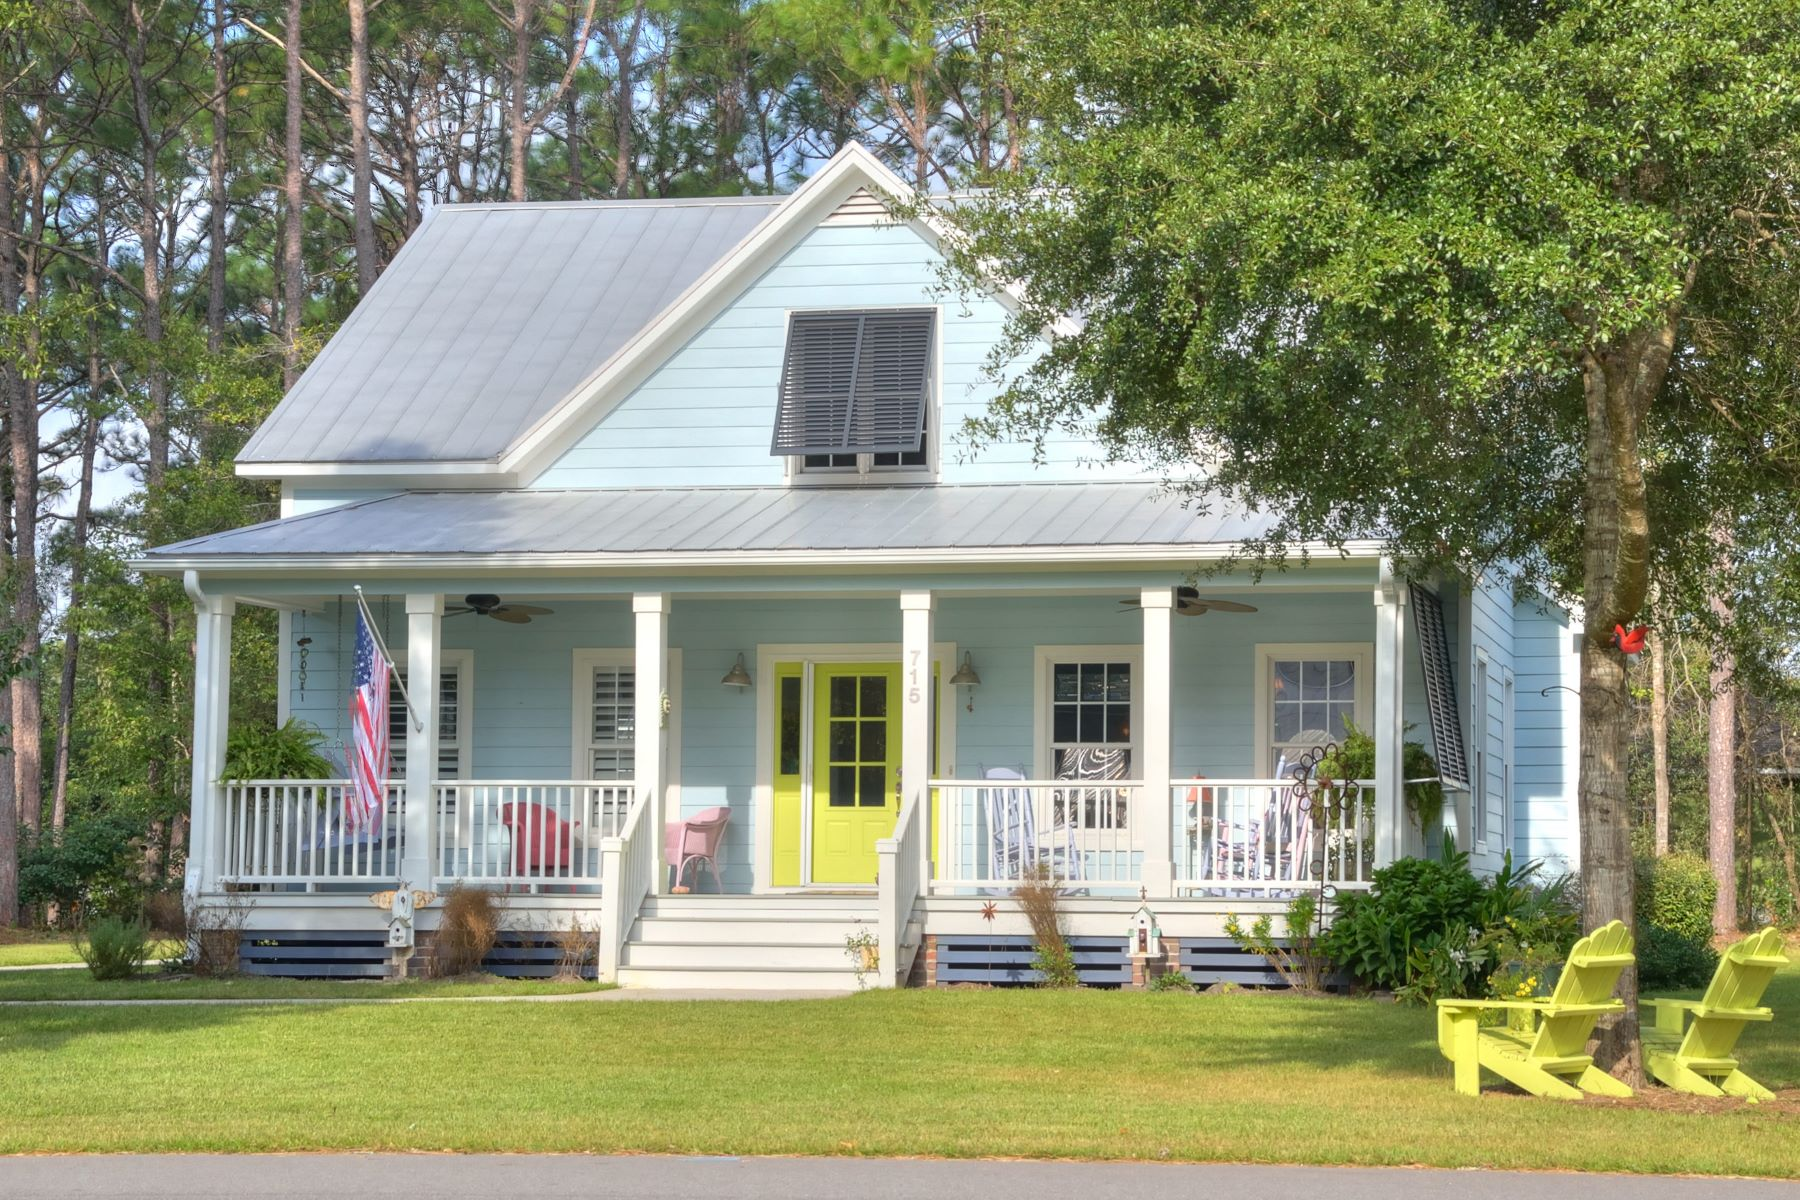 Single Family Home for Sale at In town living at it's finest! 715 E Longleaf Drive Southport, North Carolina 28461 United States